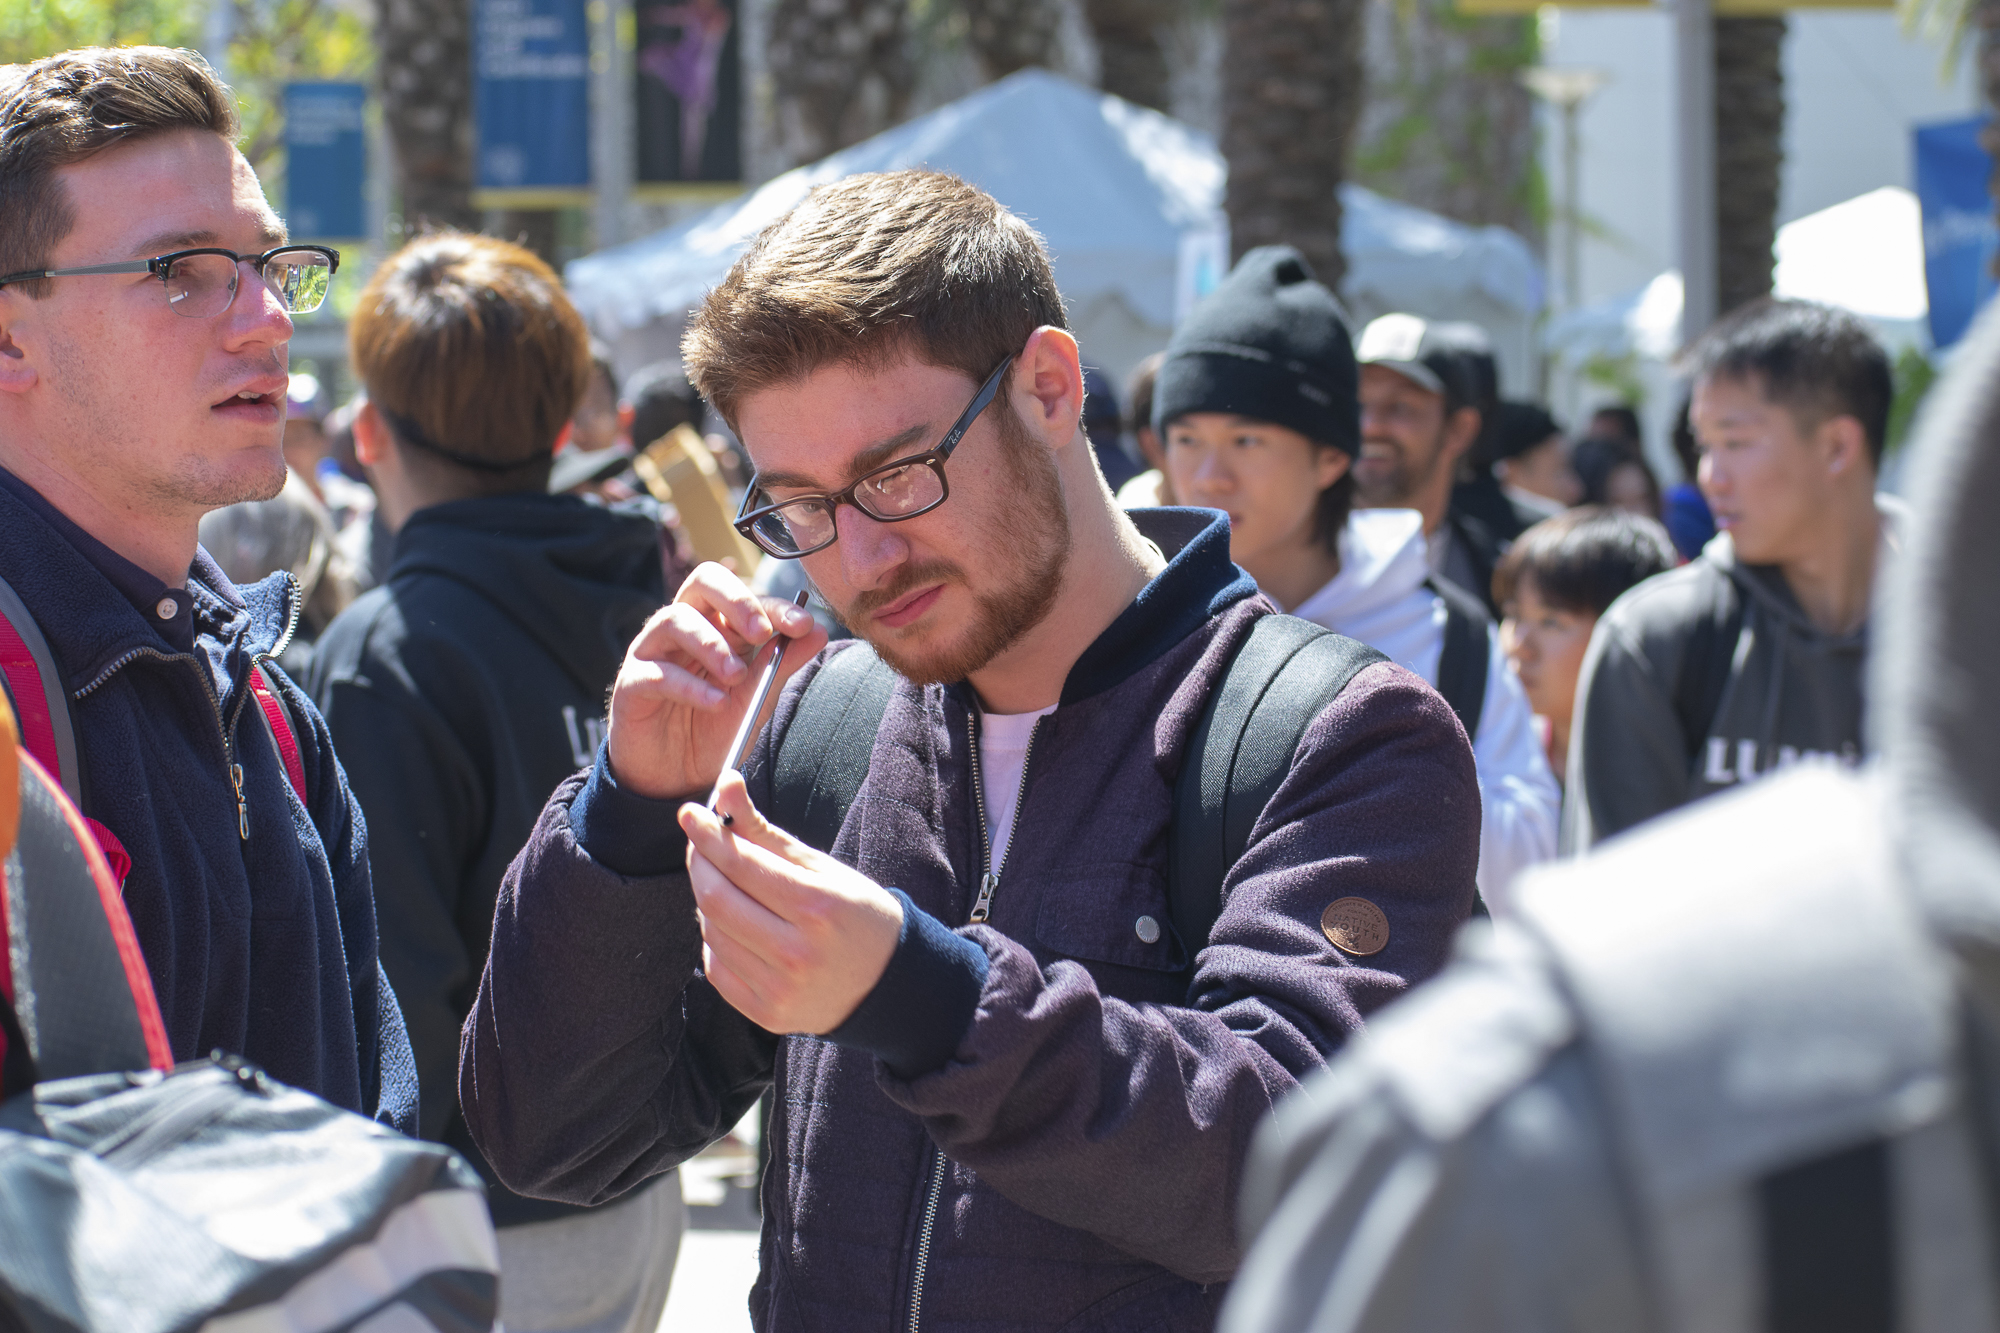 On the quad at Santa Monica College, Rafael Alvarez inspects a metal straw given to him by Plastic Free SMC during Club Row on Thursday, April 26, 2018 in Santa Monica, California. With over 60 clubs in attendance, the day is meant to encourage clubs to showcase what they've been doing over the semester for students. (Ethan Lauren/Corsair Photo)